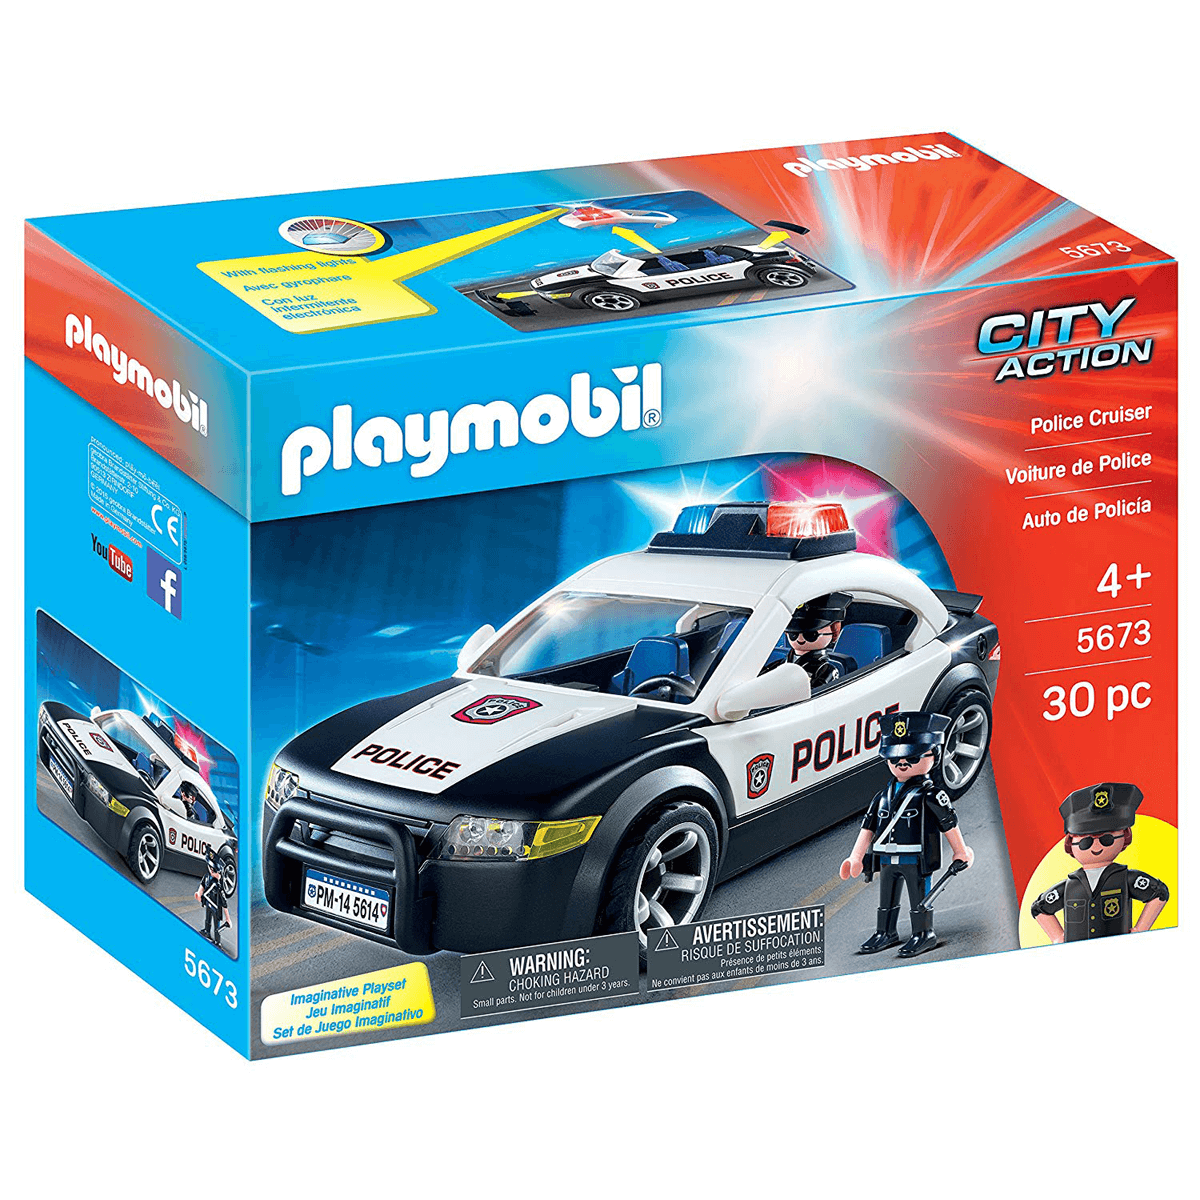 Playmobil City Action Police Cruiser - 5673 from Early Learning Center